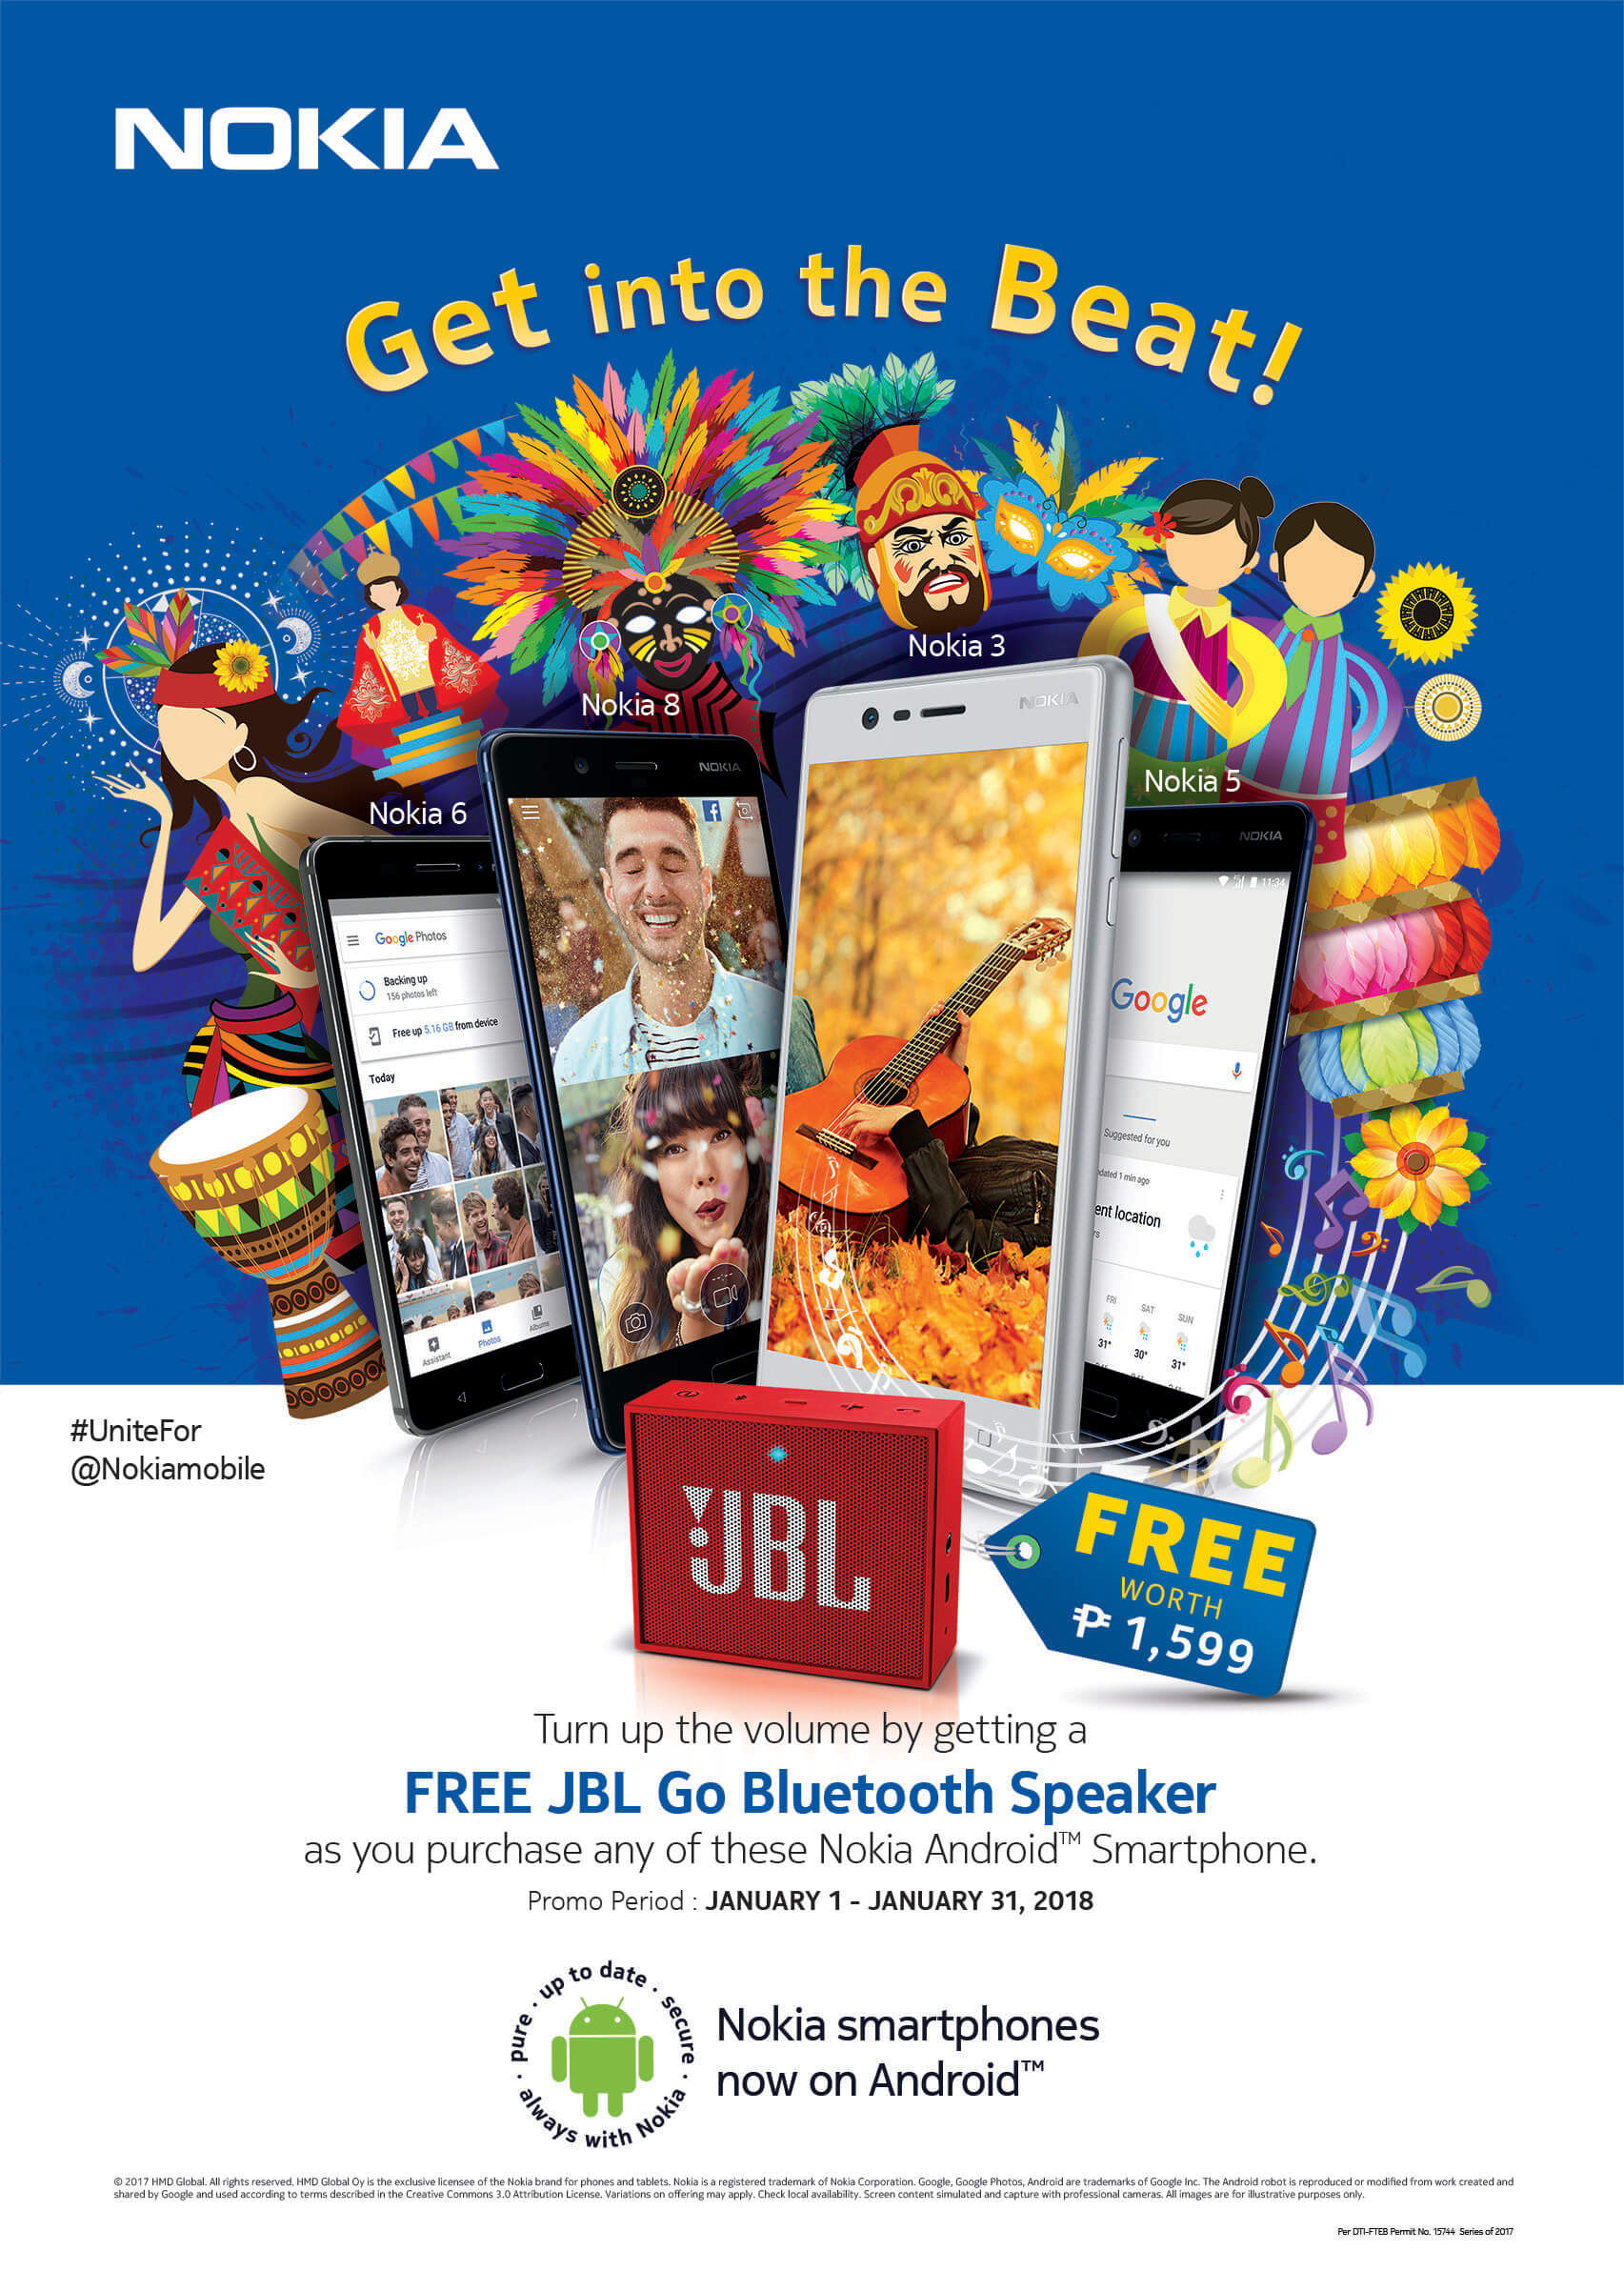 Nokia JBL FESTIVAL POSTER RANGE 1 - Get a FREE JBL Go Speaker With Every Purchase of a Nokia Android Smartphone!